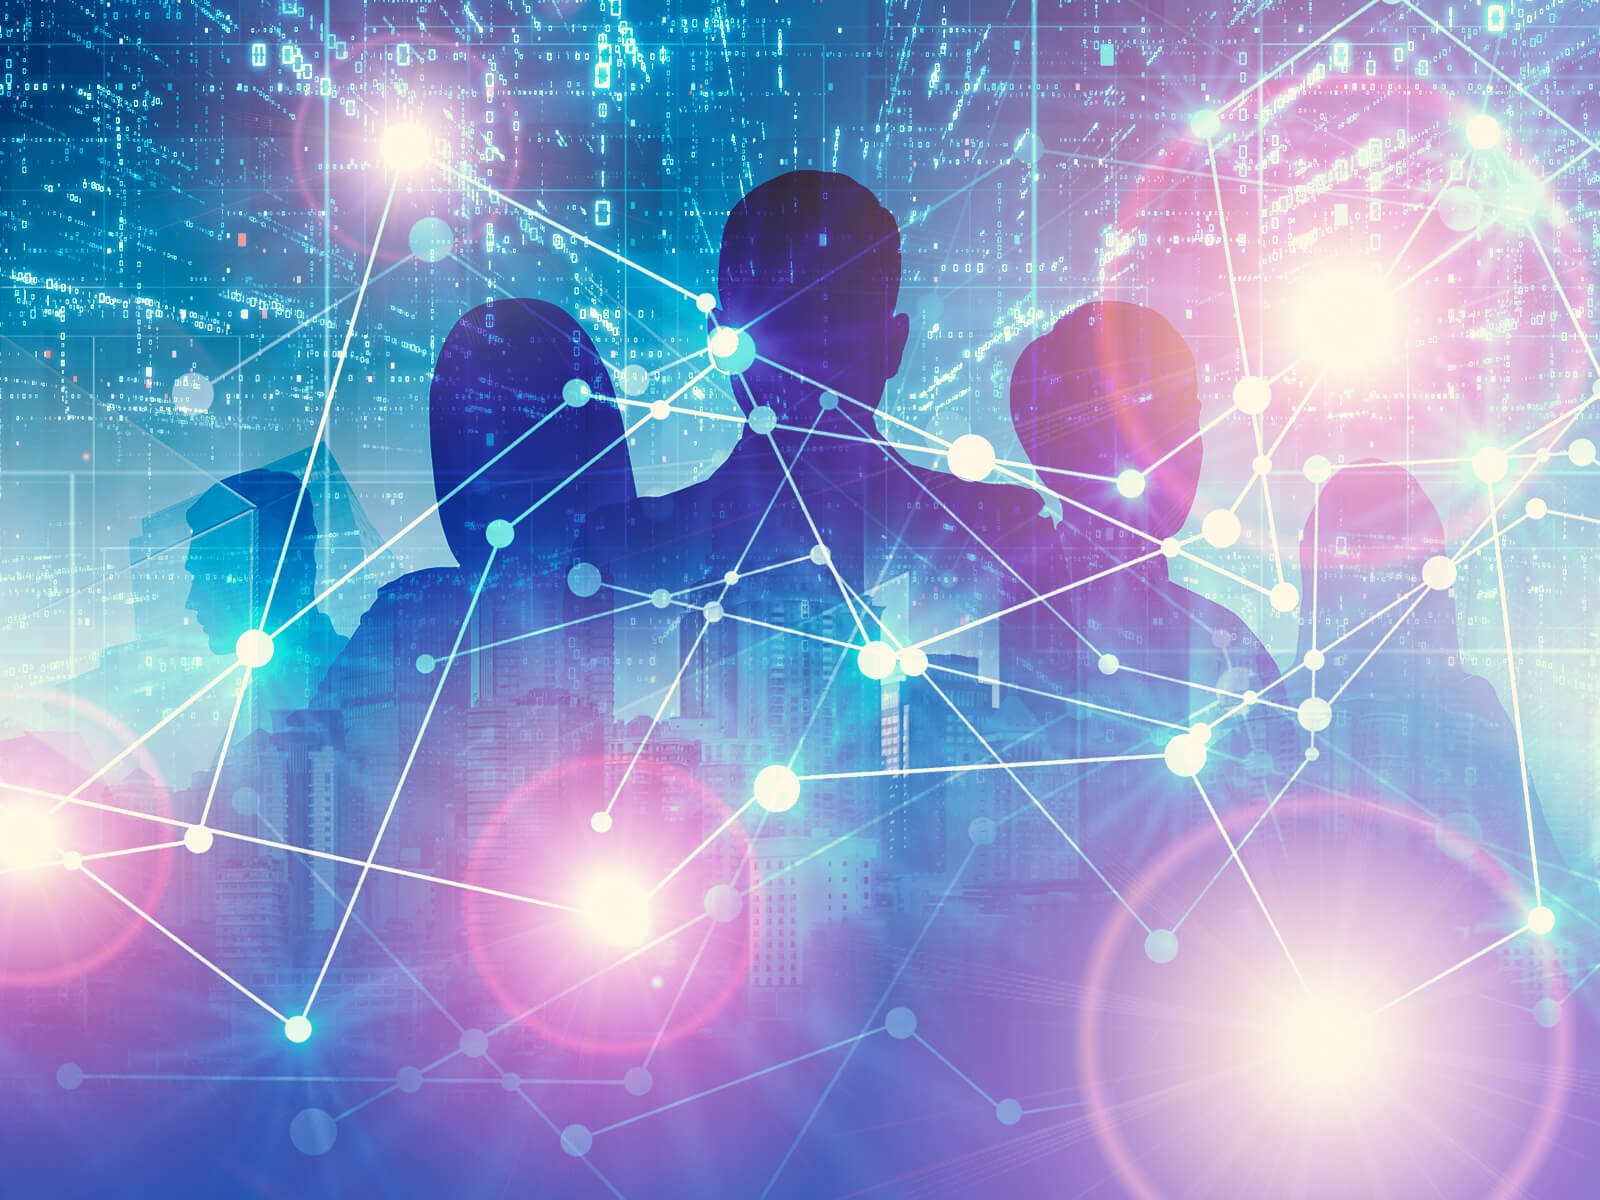 Data collaboration doesn't have to mean data sharing